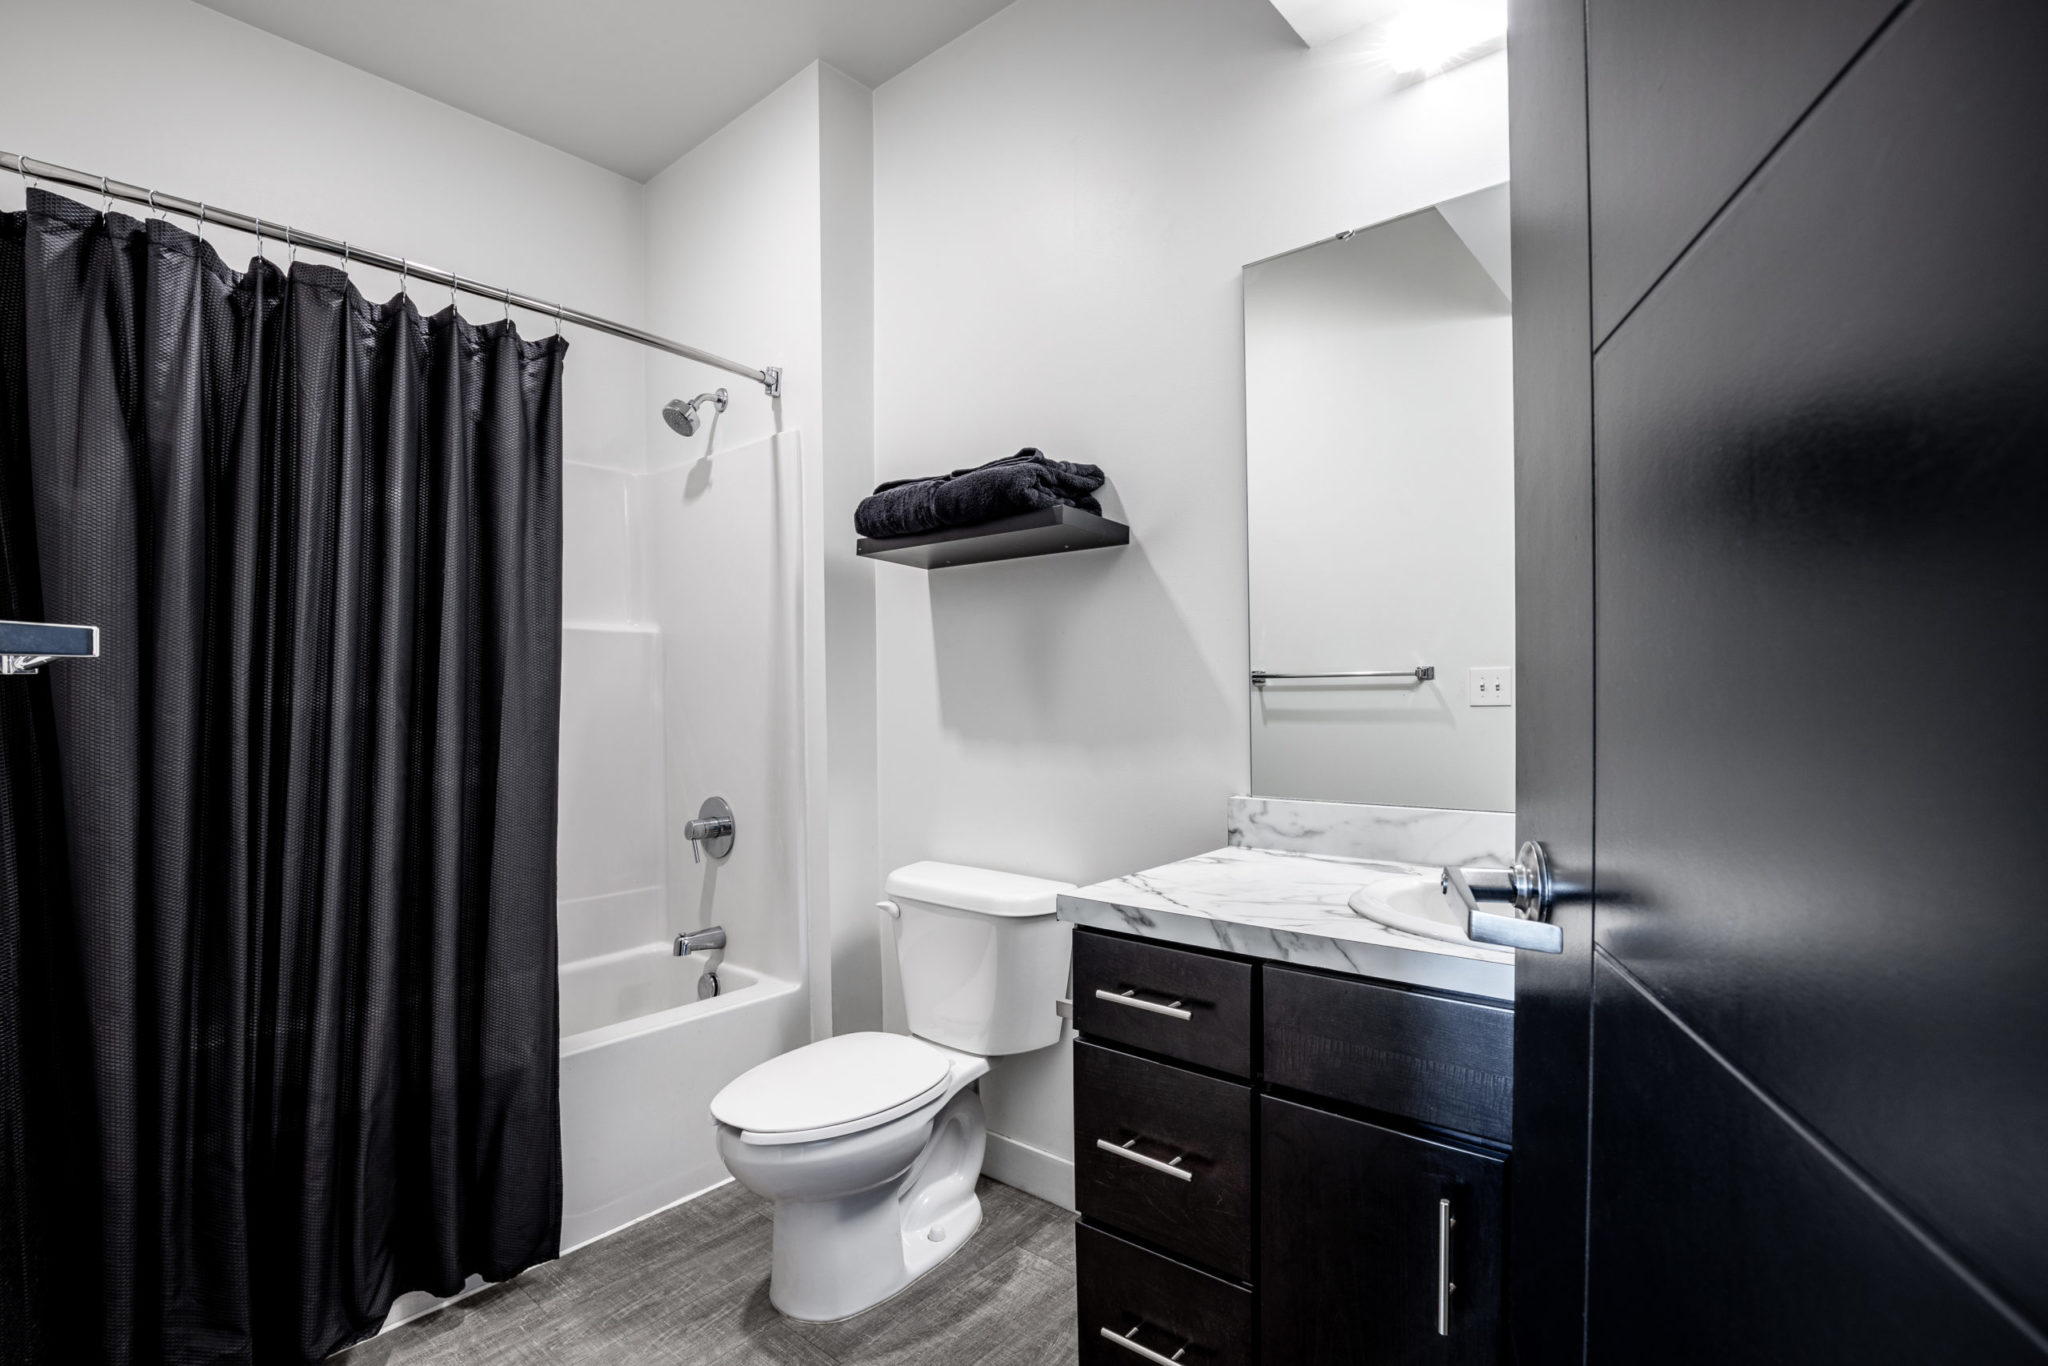 Modern minimal black and white bathroom with black shower curtains